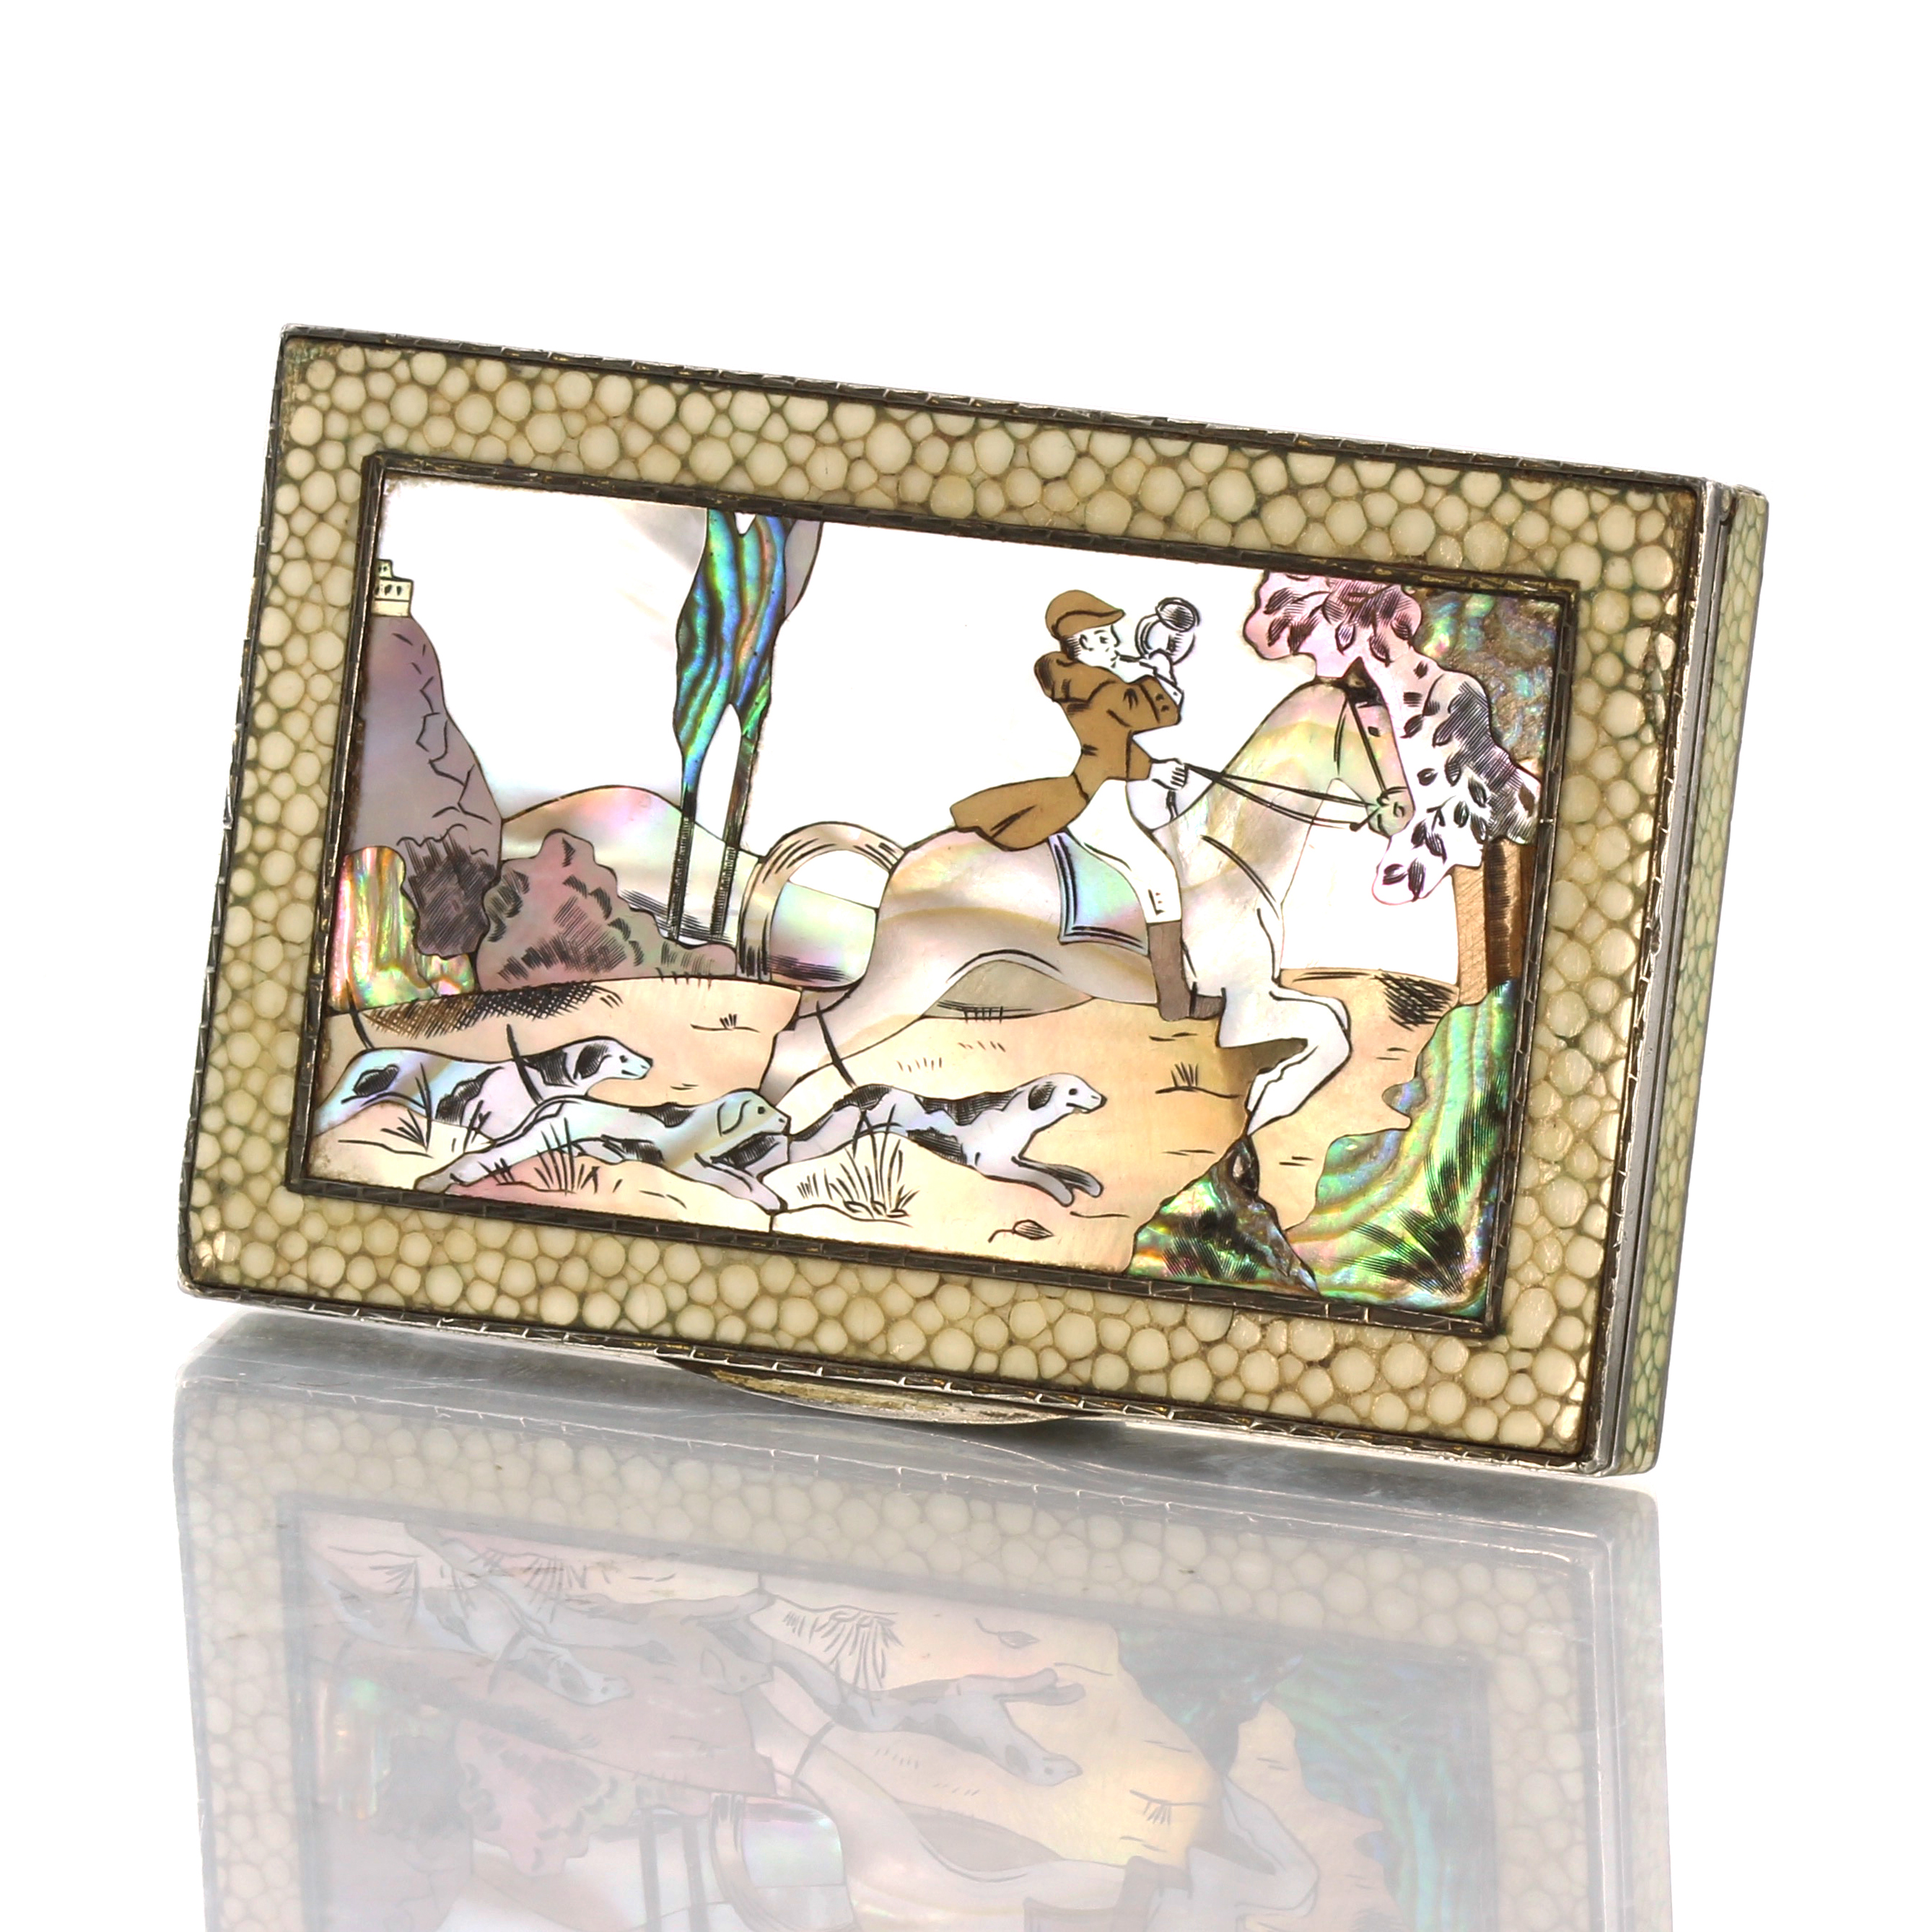 Los 117 - An antique continental shagreen, mother of pearl and abalone shell sterling silver stuff box with